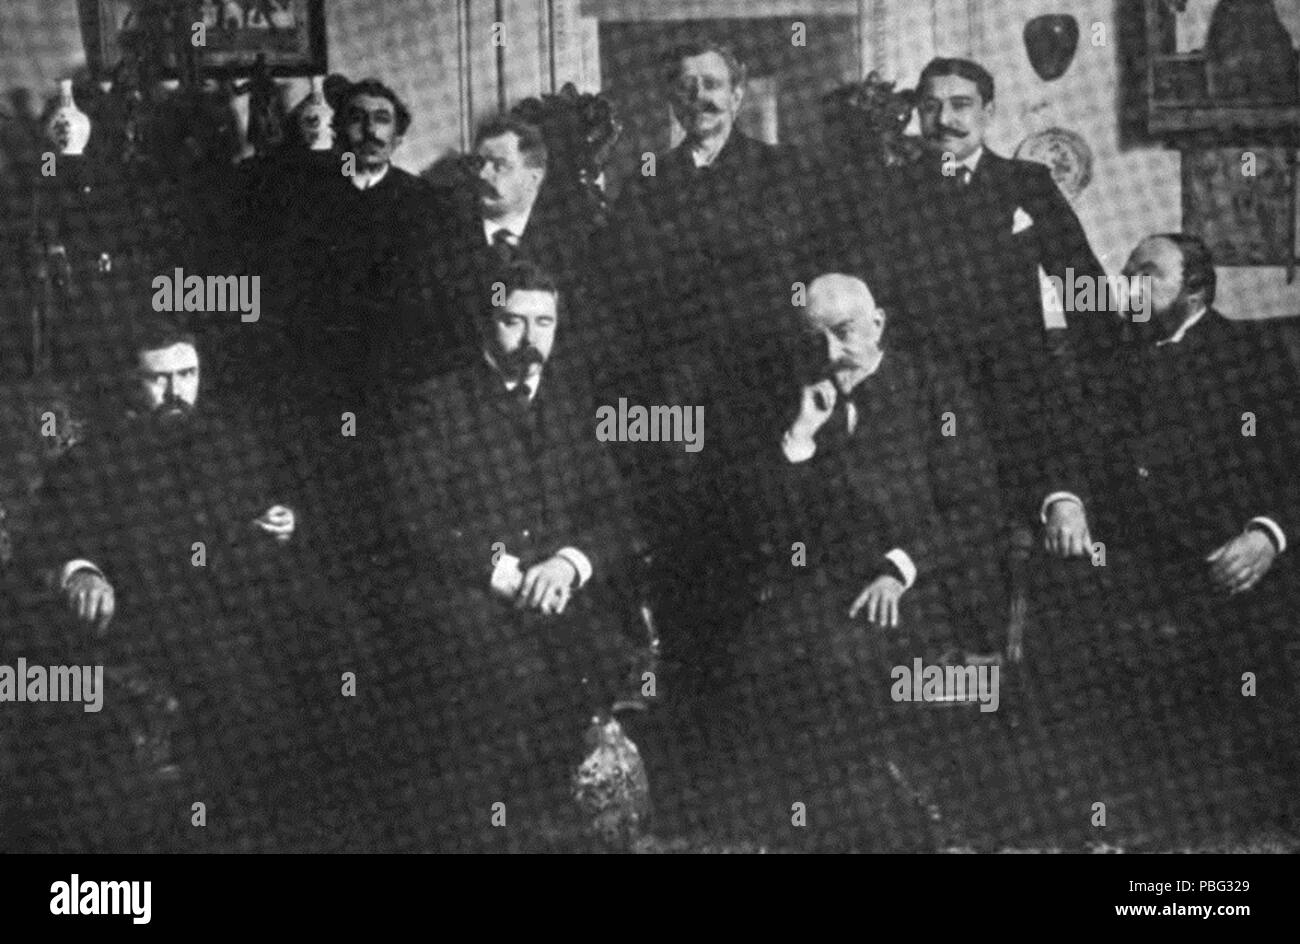 . English: Standing: Élémir Bourges, Lucien Descaves, Léon Hennique and Léon Daudet. Sitting: Gustave Geffroy, H. Rosny, Joris-Karl Huysmans, J. Rosny. no later than 1907 1550 Some Members of the Goncourt Academy Stock Photo